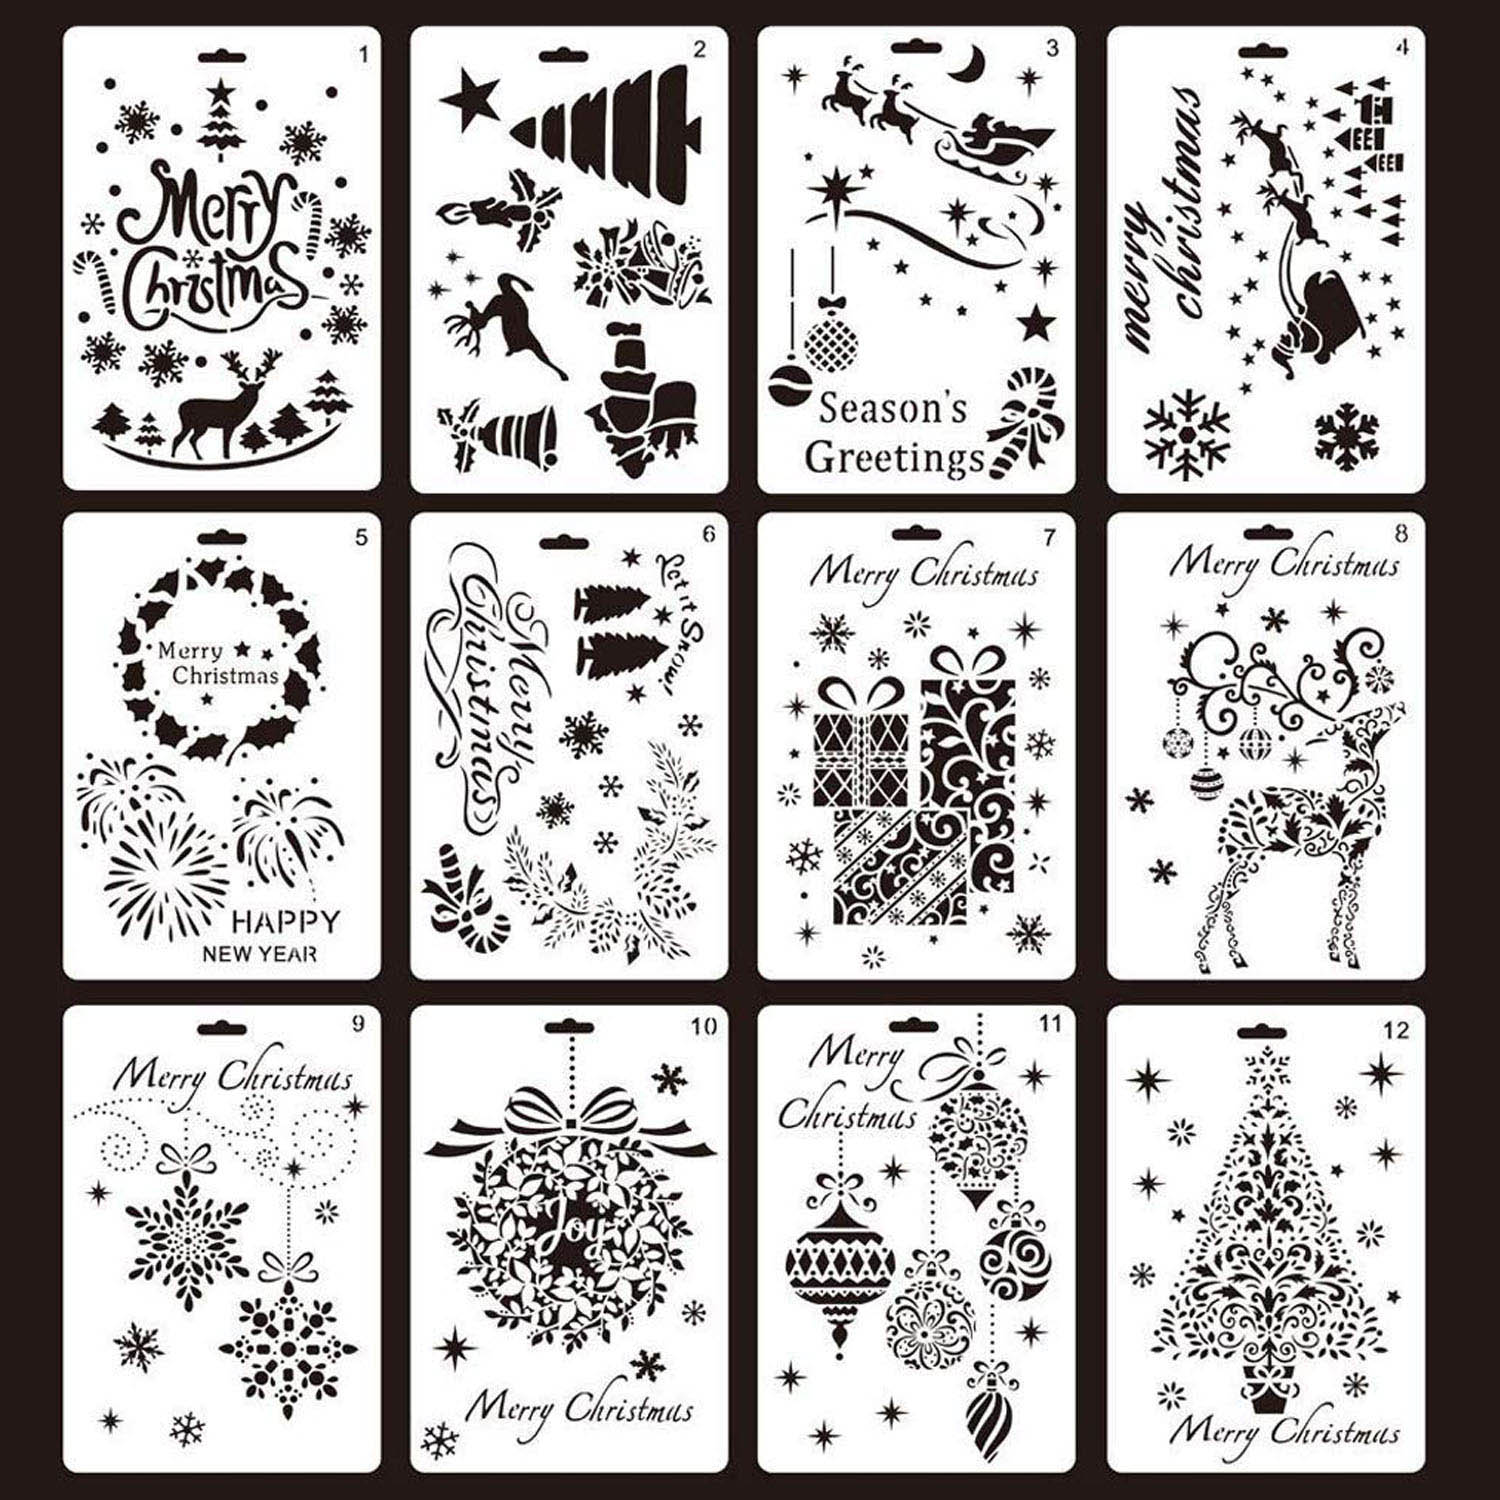 12pcs Style Merry Christmas Xmas Pattern Painting Stencils Drawing Templates DIY Painting Scrapbooking Album Craft Tool Toy